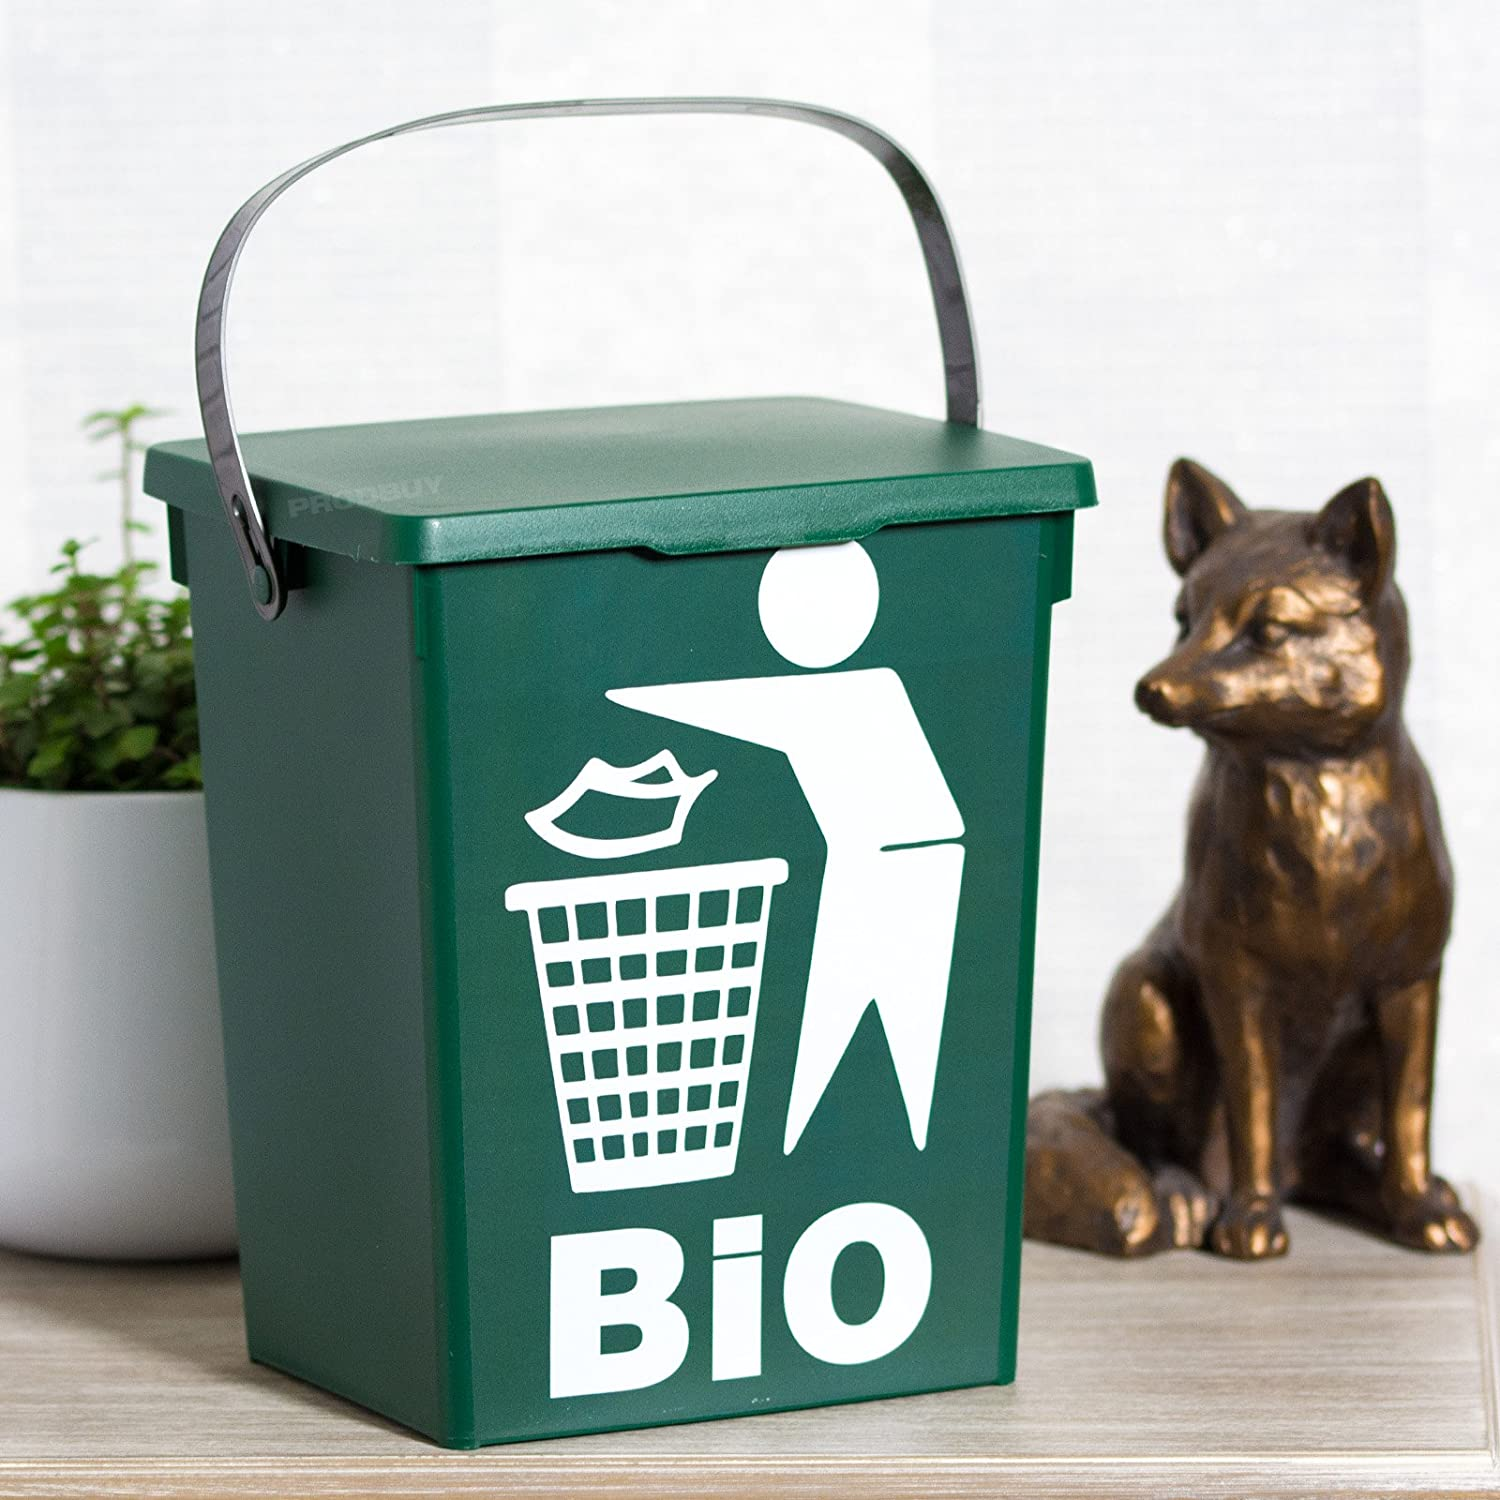 5 Litre Green Plastic Counter Top Compost Bin ProdBuy Limited